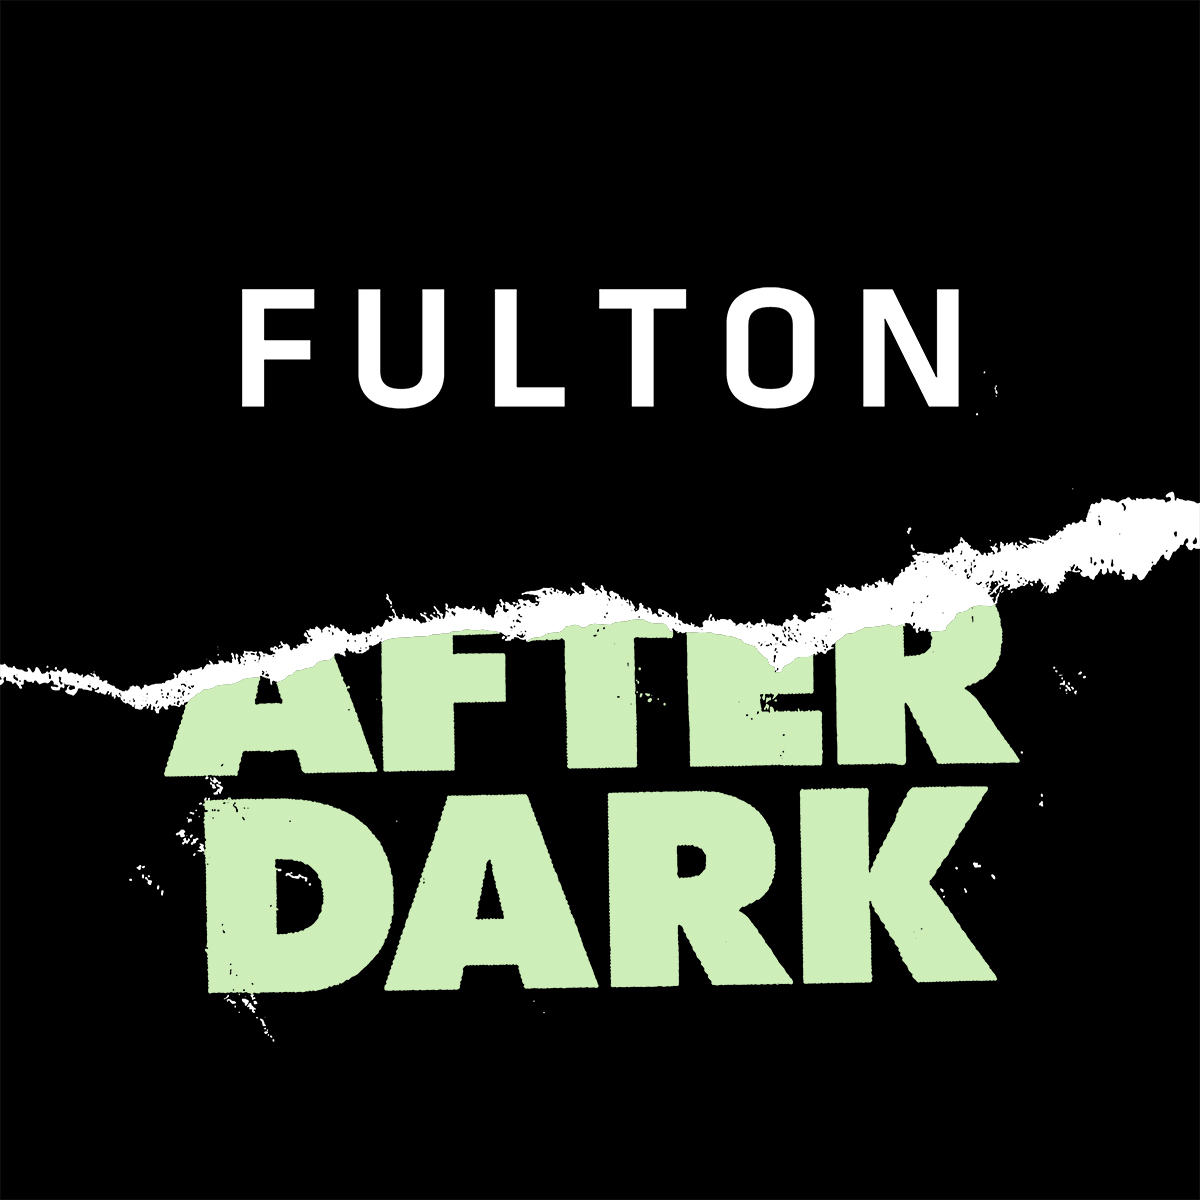 What is Fulton After Dark?